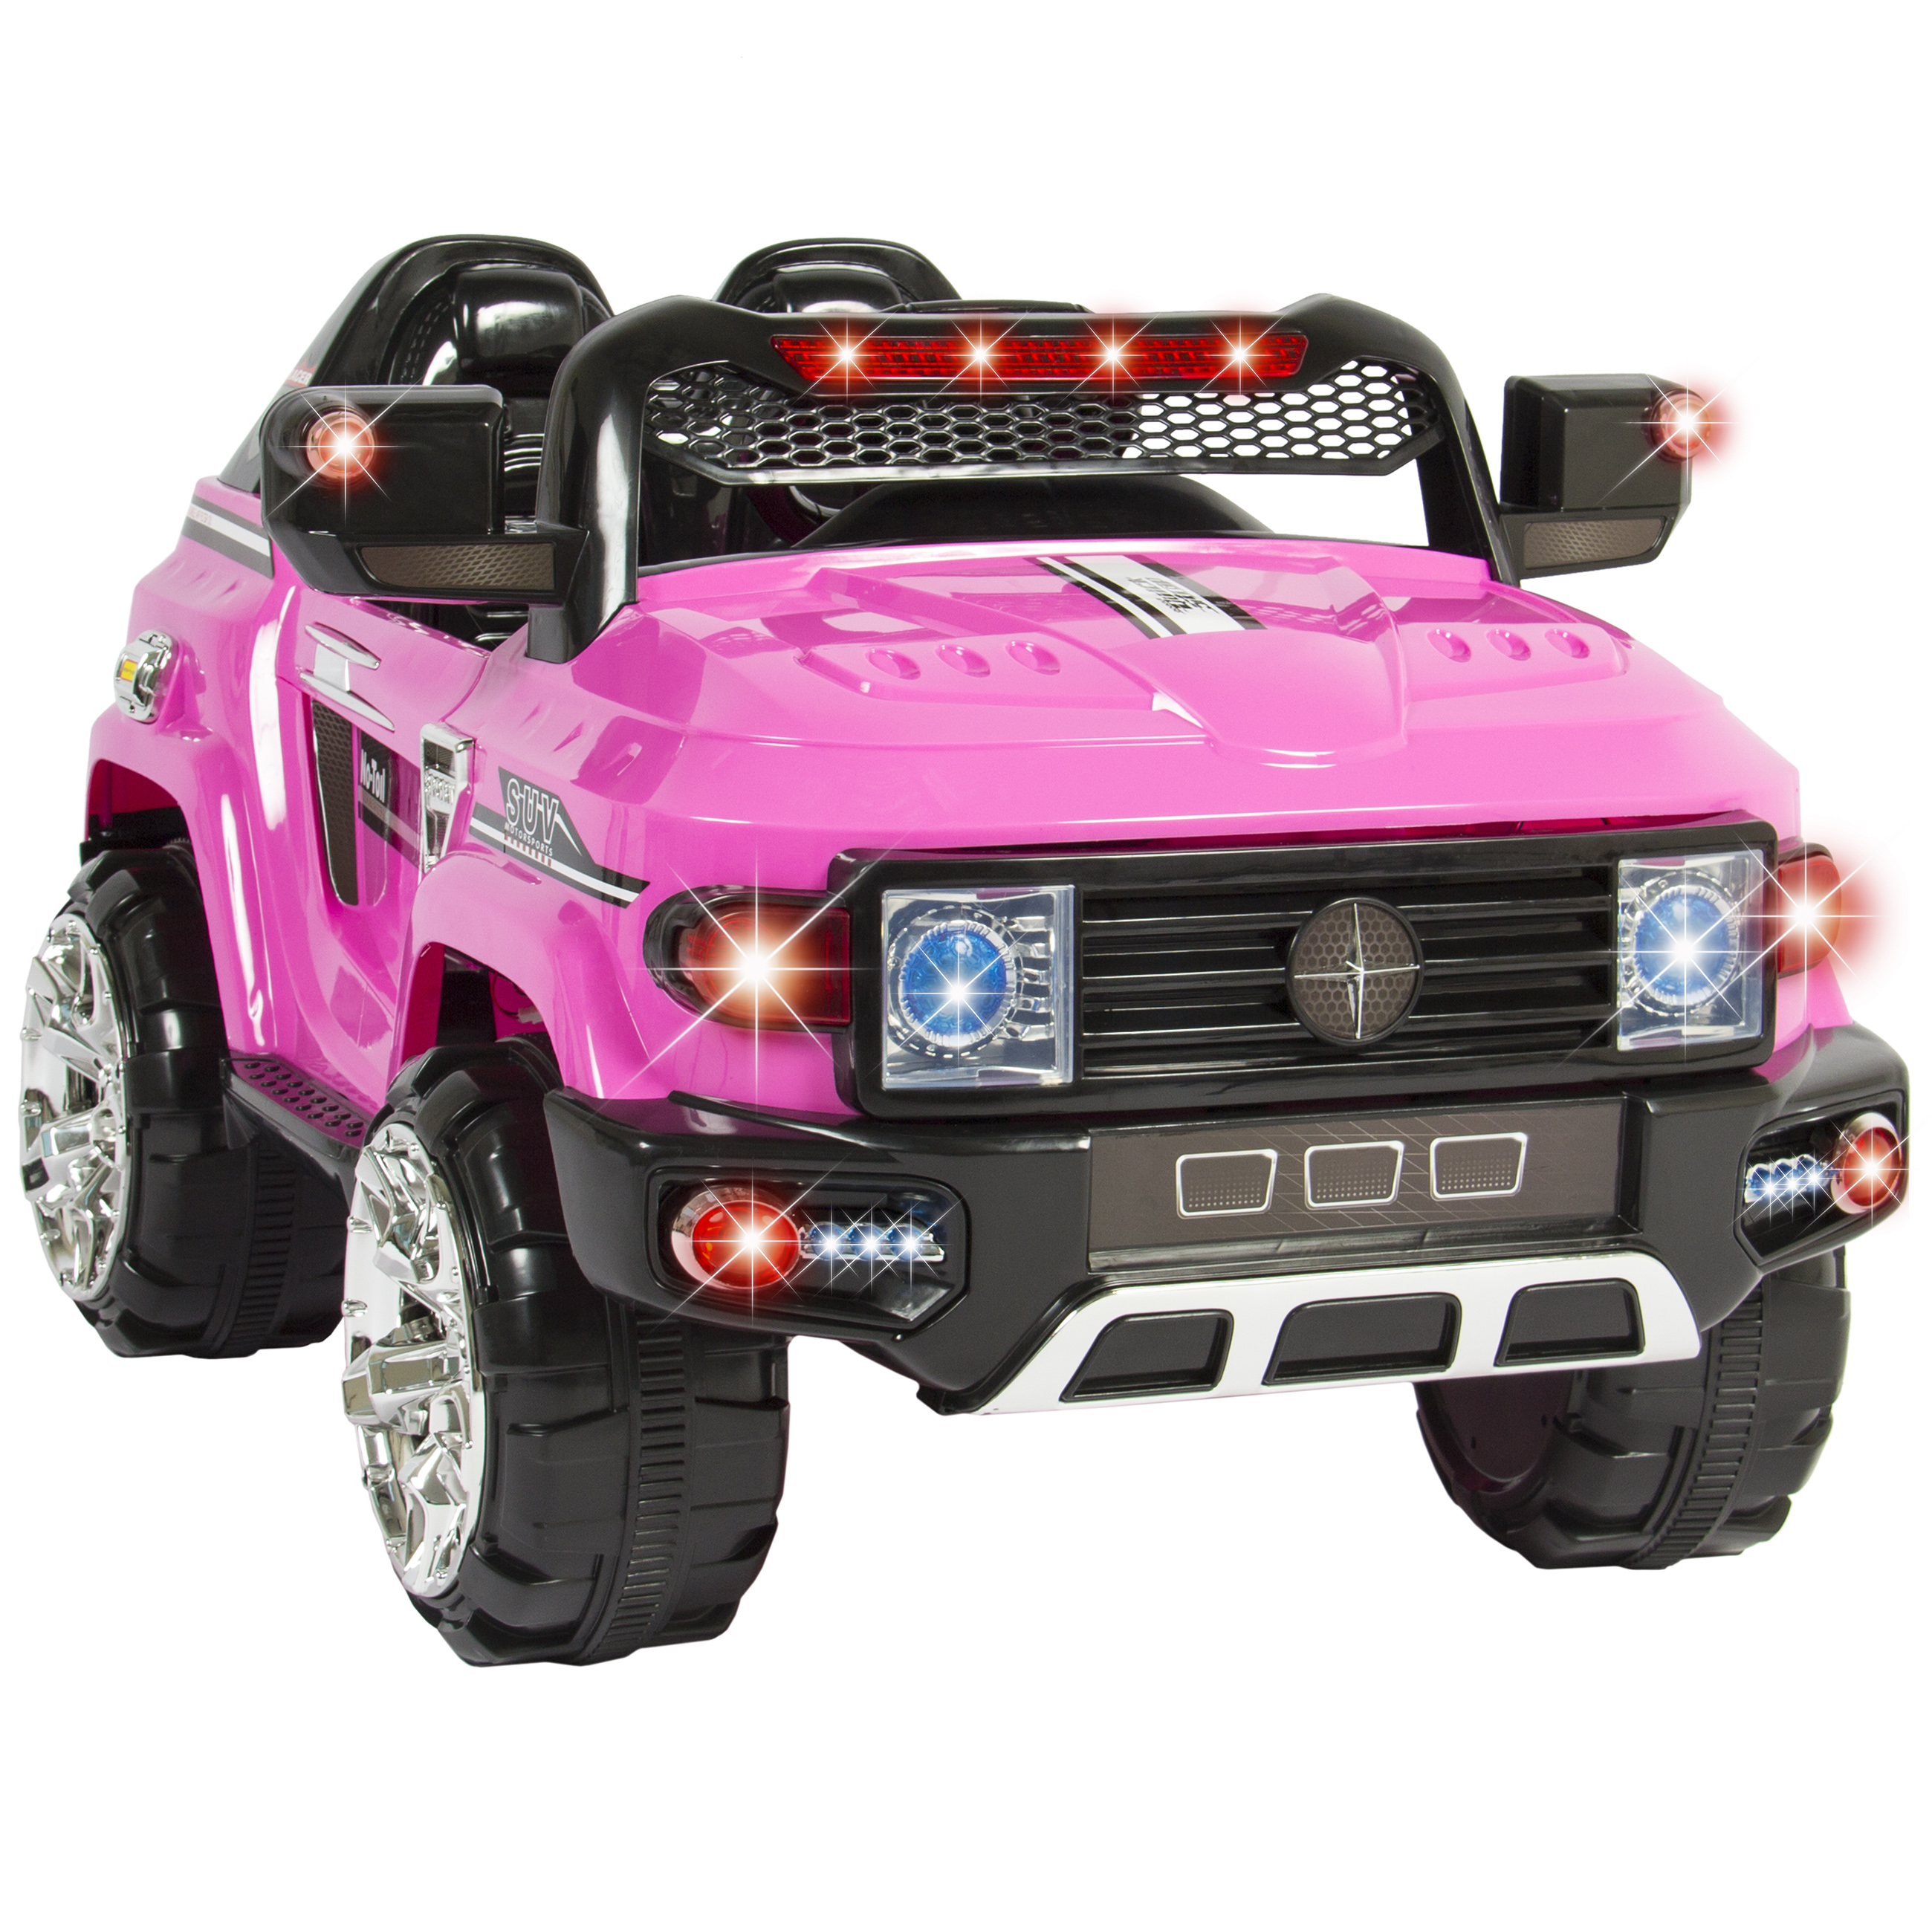 ride on toy car battery operated classic sports car with remote control and effects by rockin rollers – toys for boys and girls 2 – 5 year olds walmart